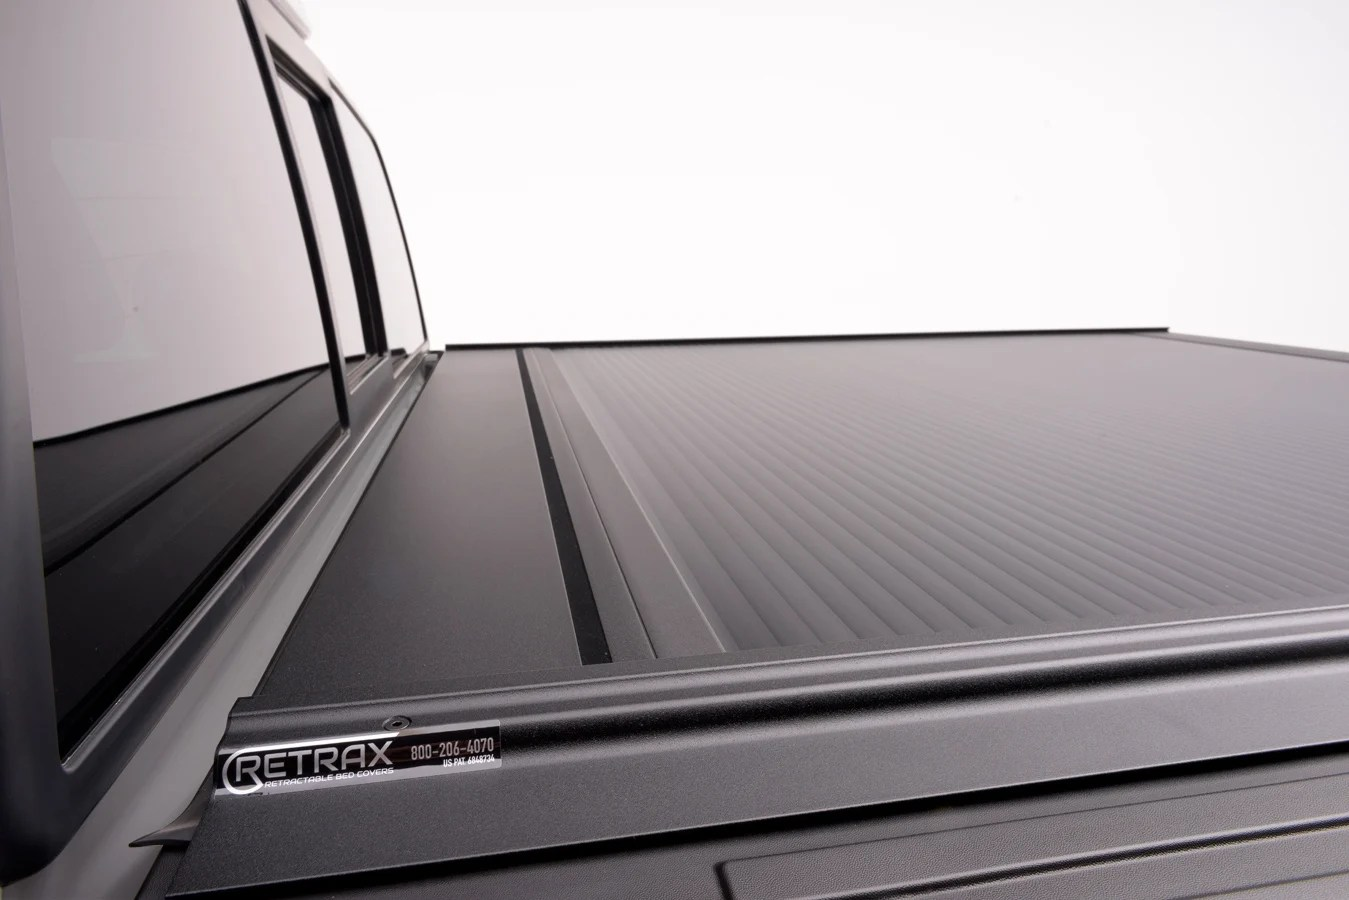 Retrax One Mx Tonneau Cover Free Shipping Amp Price Match